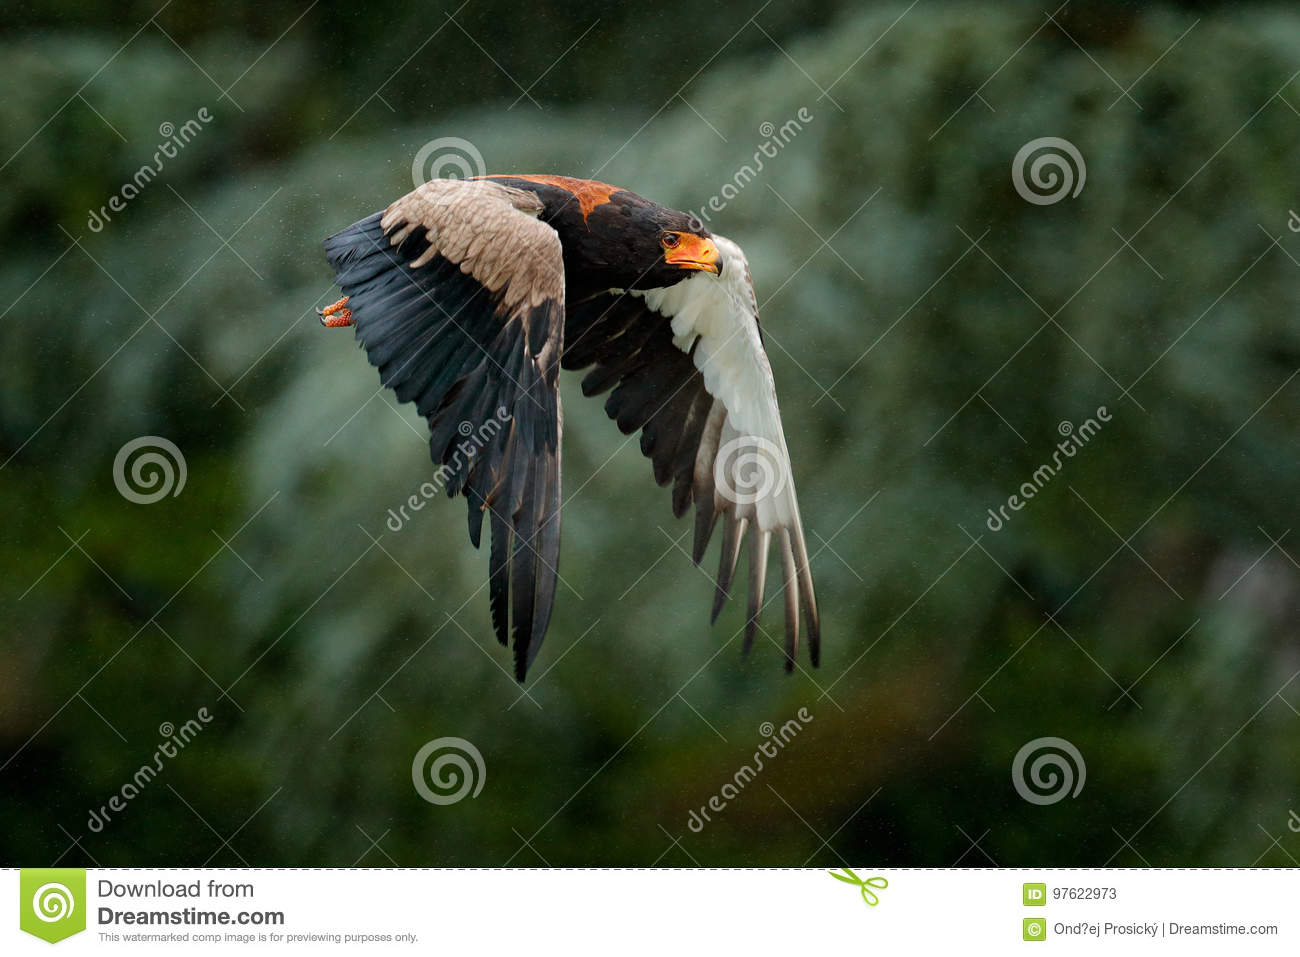 Bateleur Eagle, Terathopius ecaudatus, brown and black bird of prey fly in the nature habitat, Kenya, Africa. Wildlife scene form